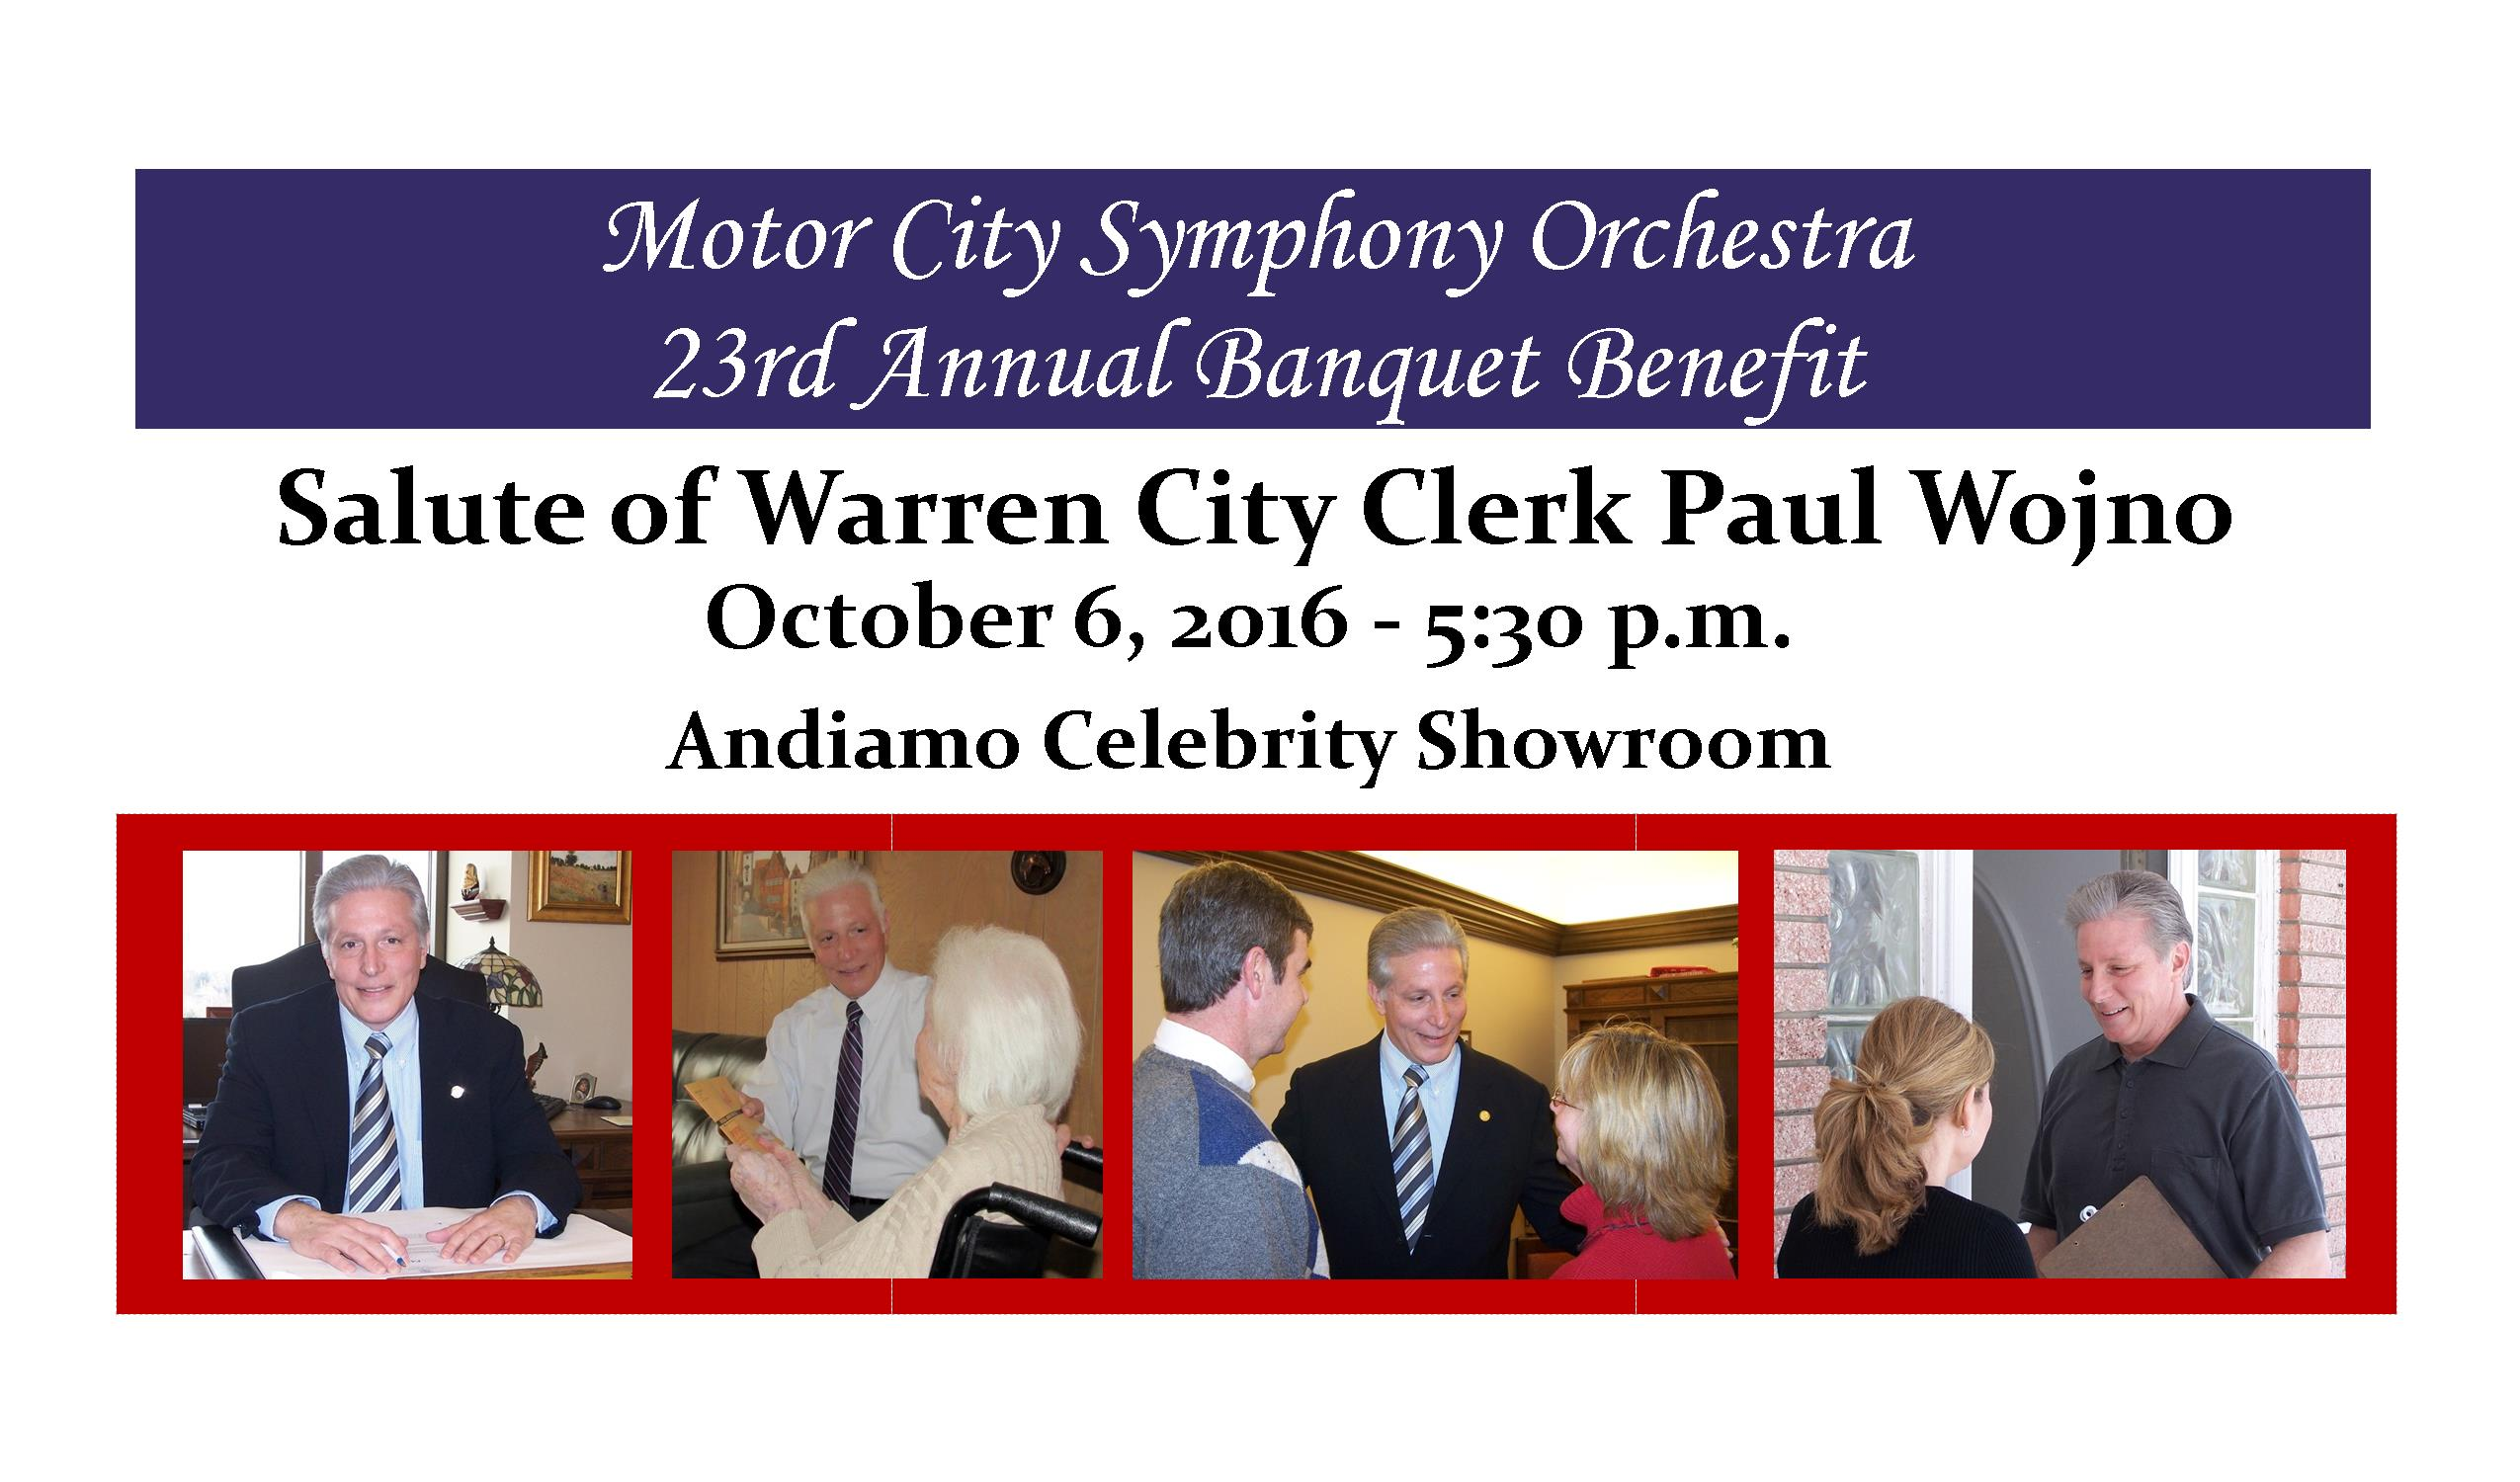 MSCO Season 44 Salute or Warren City Clerk Paul Wojno